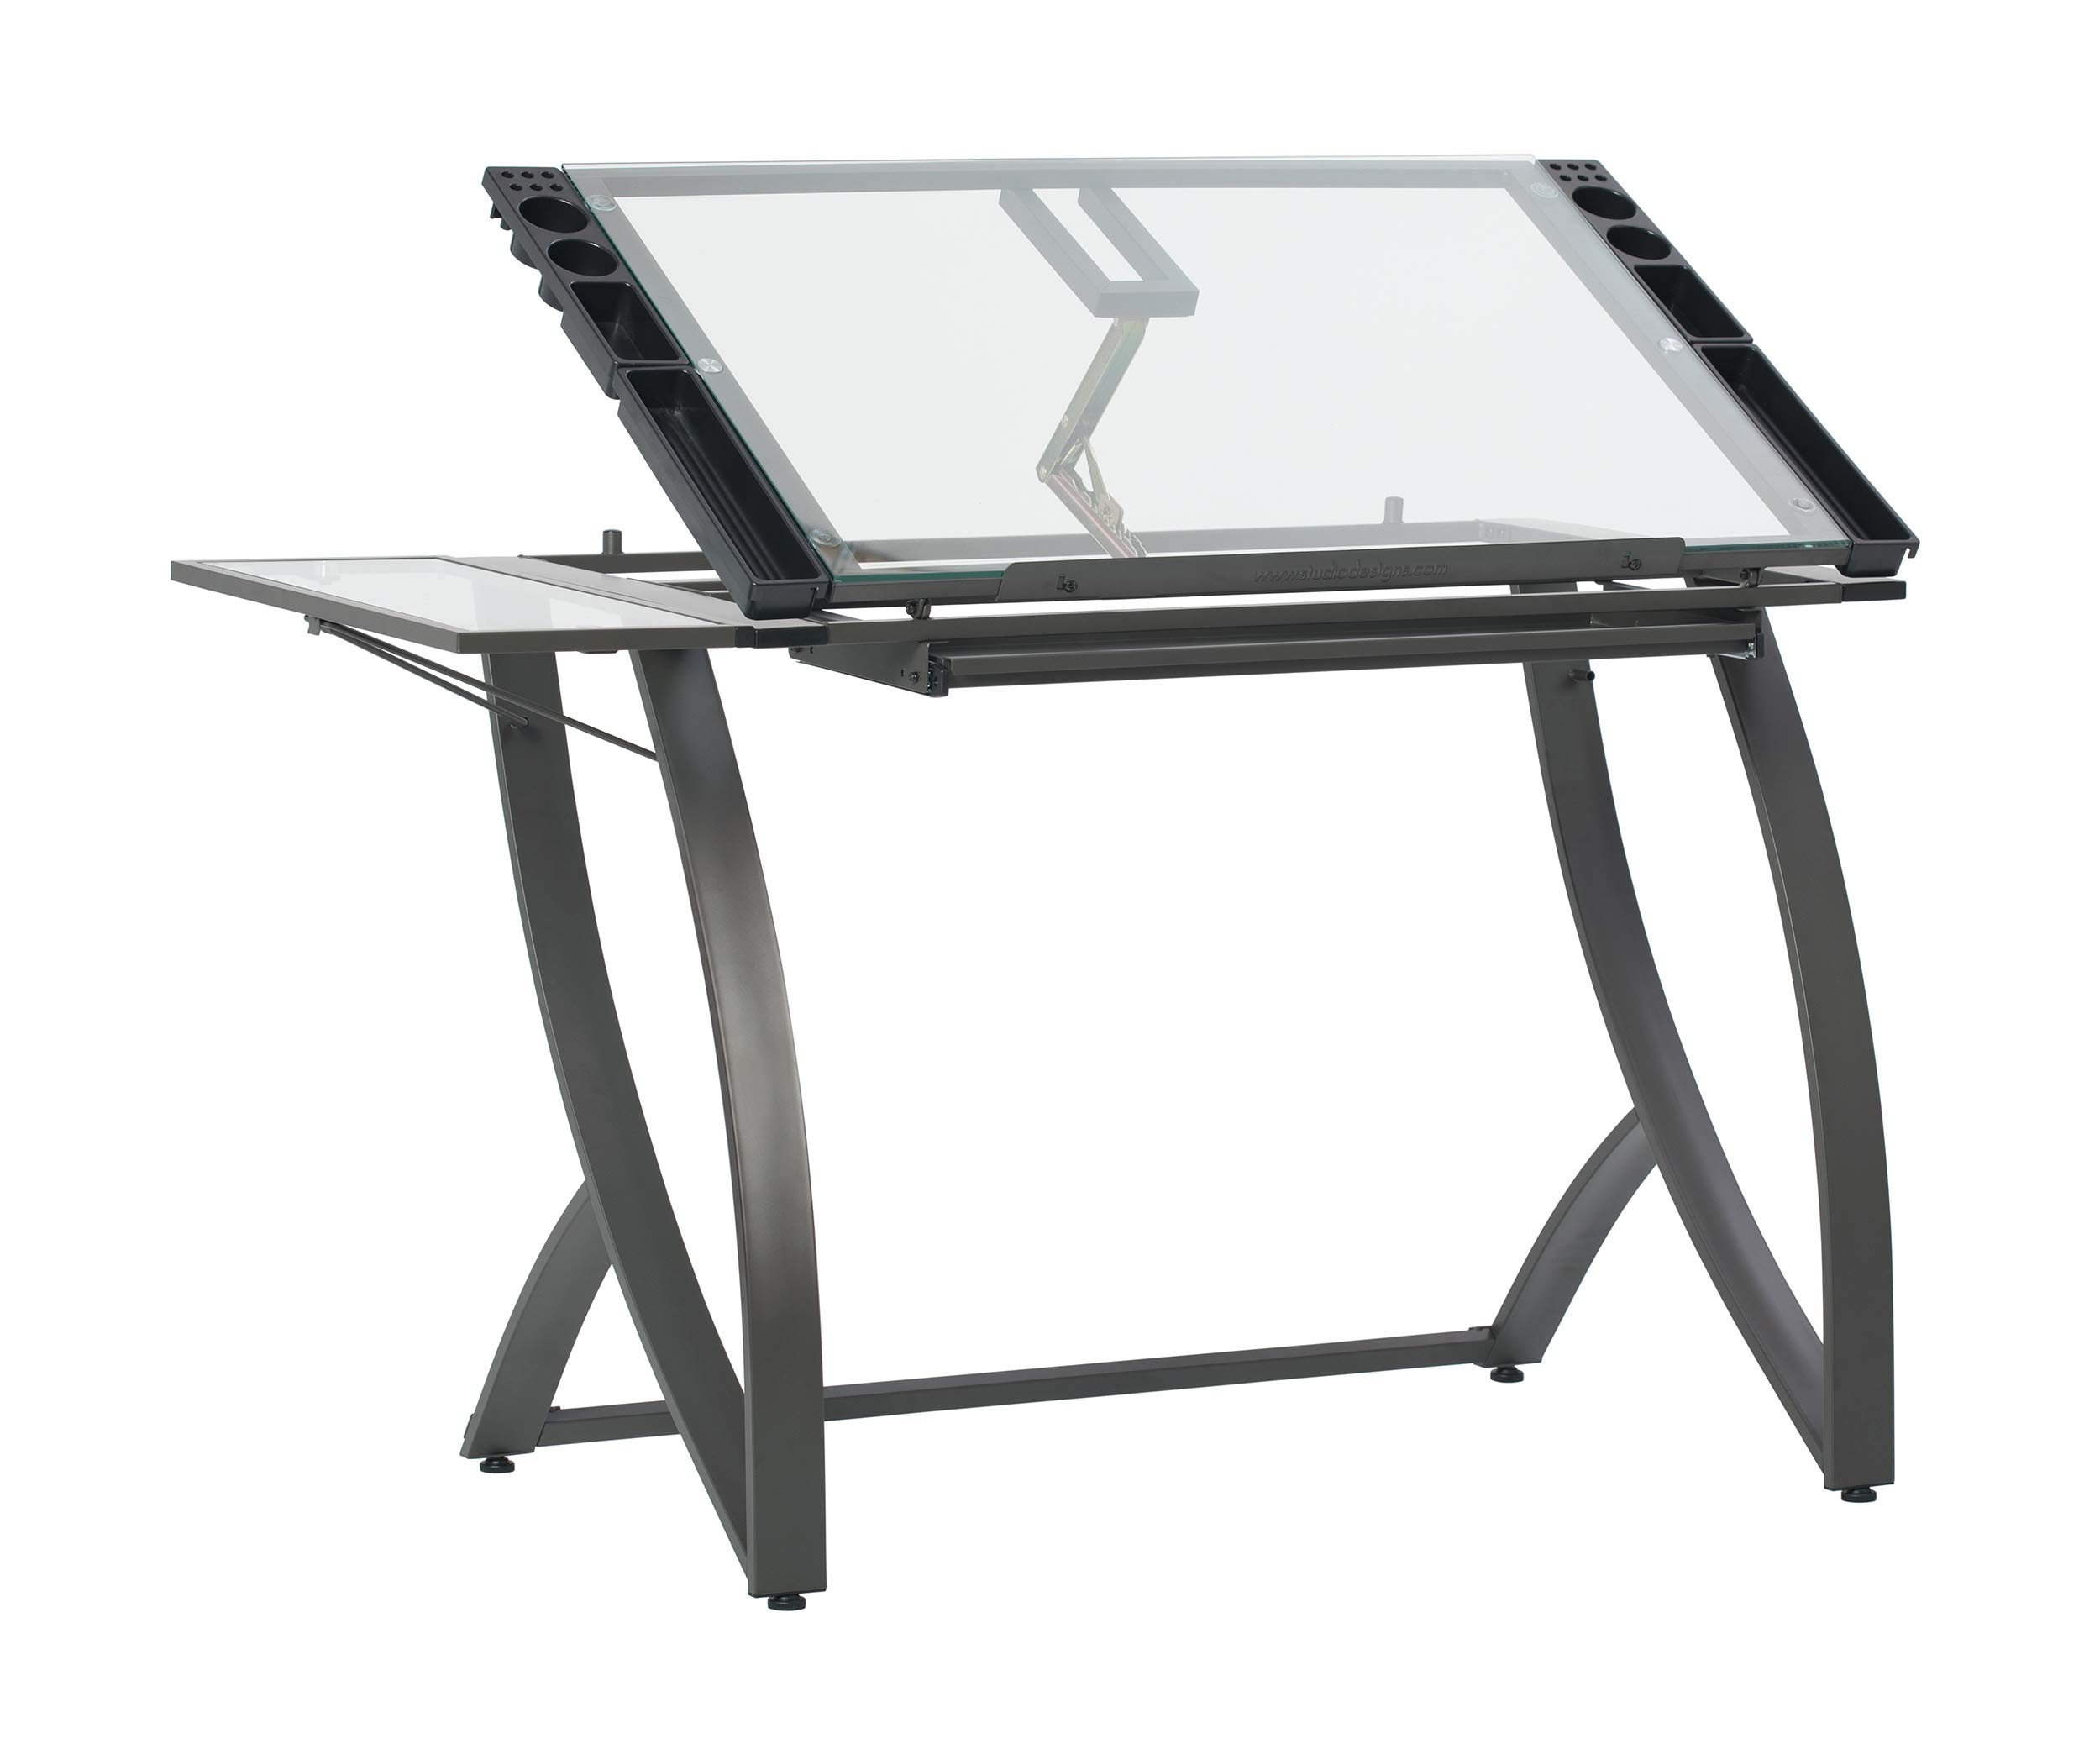 SD STUDIO DESIGNS 10079 Futura Luxe Drawing, Drafting, Craft Table with Drawer, 35'' Wide Angle Adjustable Top and Side Shelf, Pewter Grey/Clear Glass by SD STUDIO DESIGNS